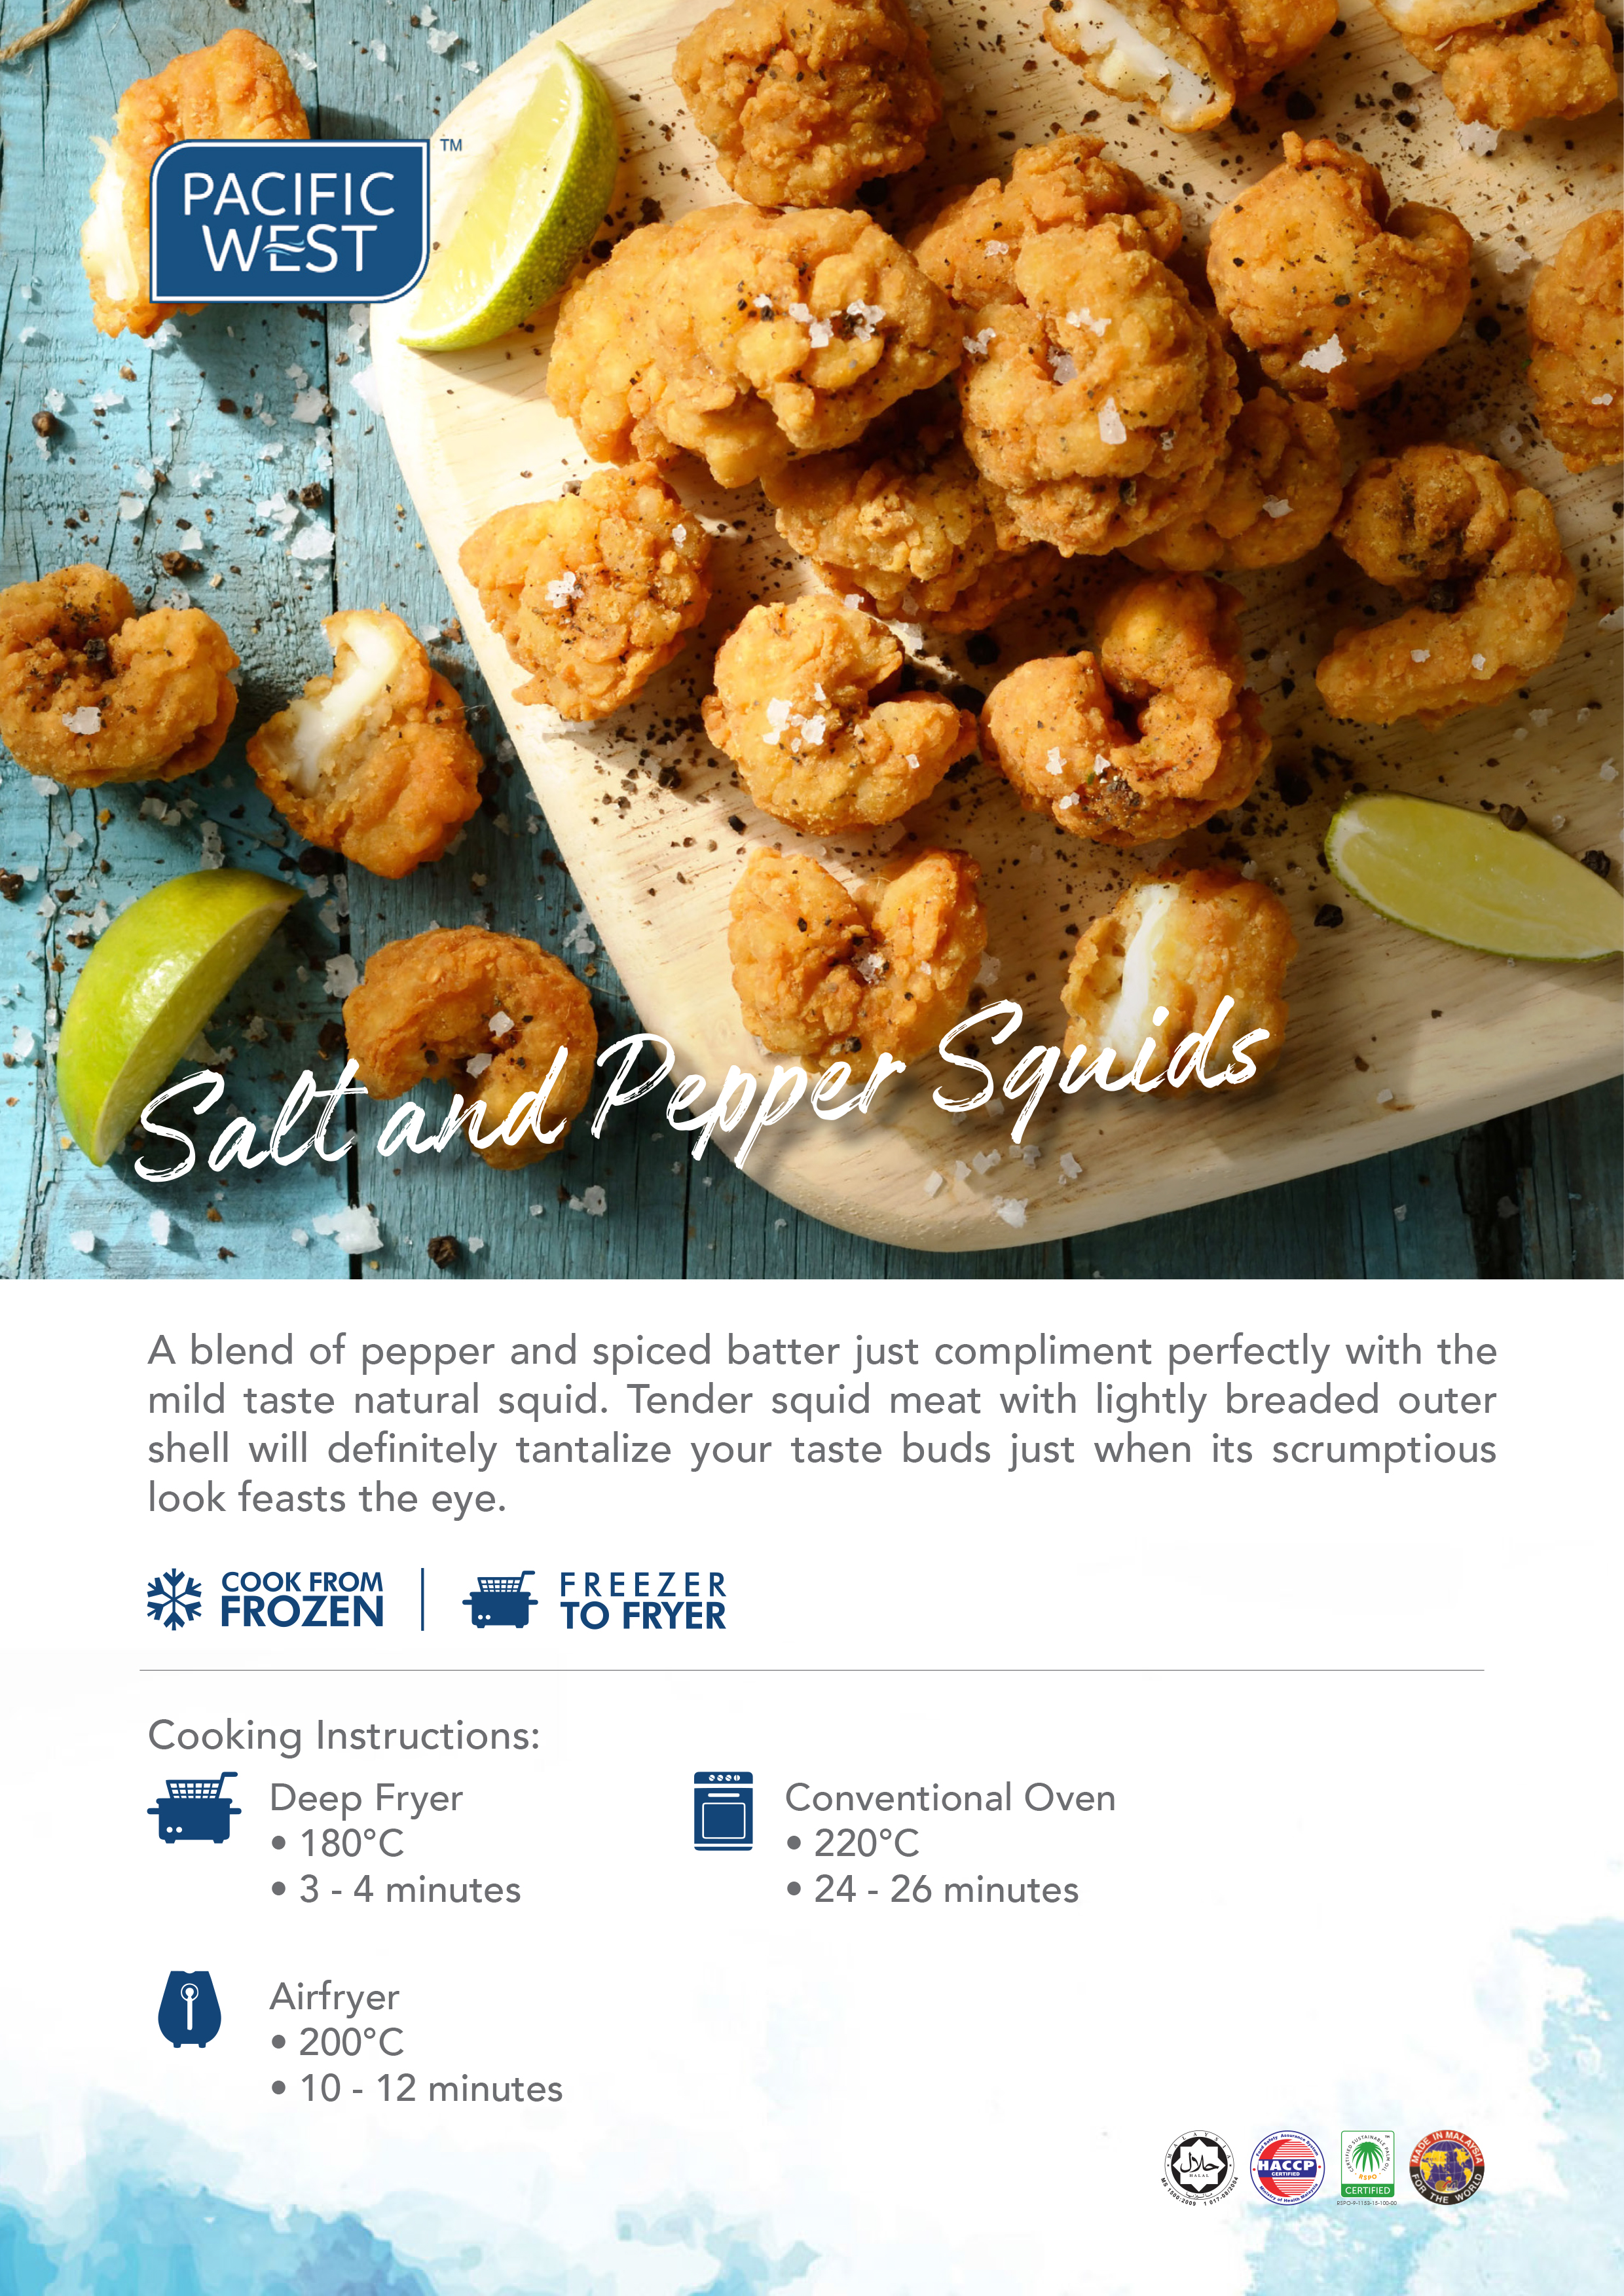 Pacific West Salt and Pepper Squid